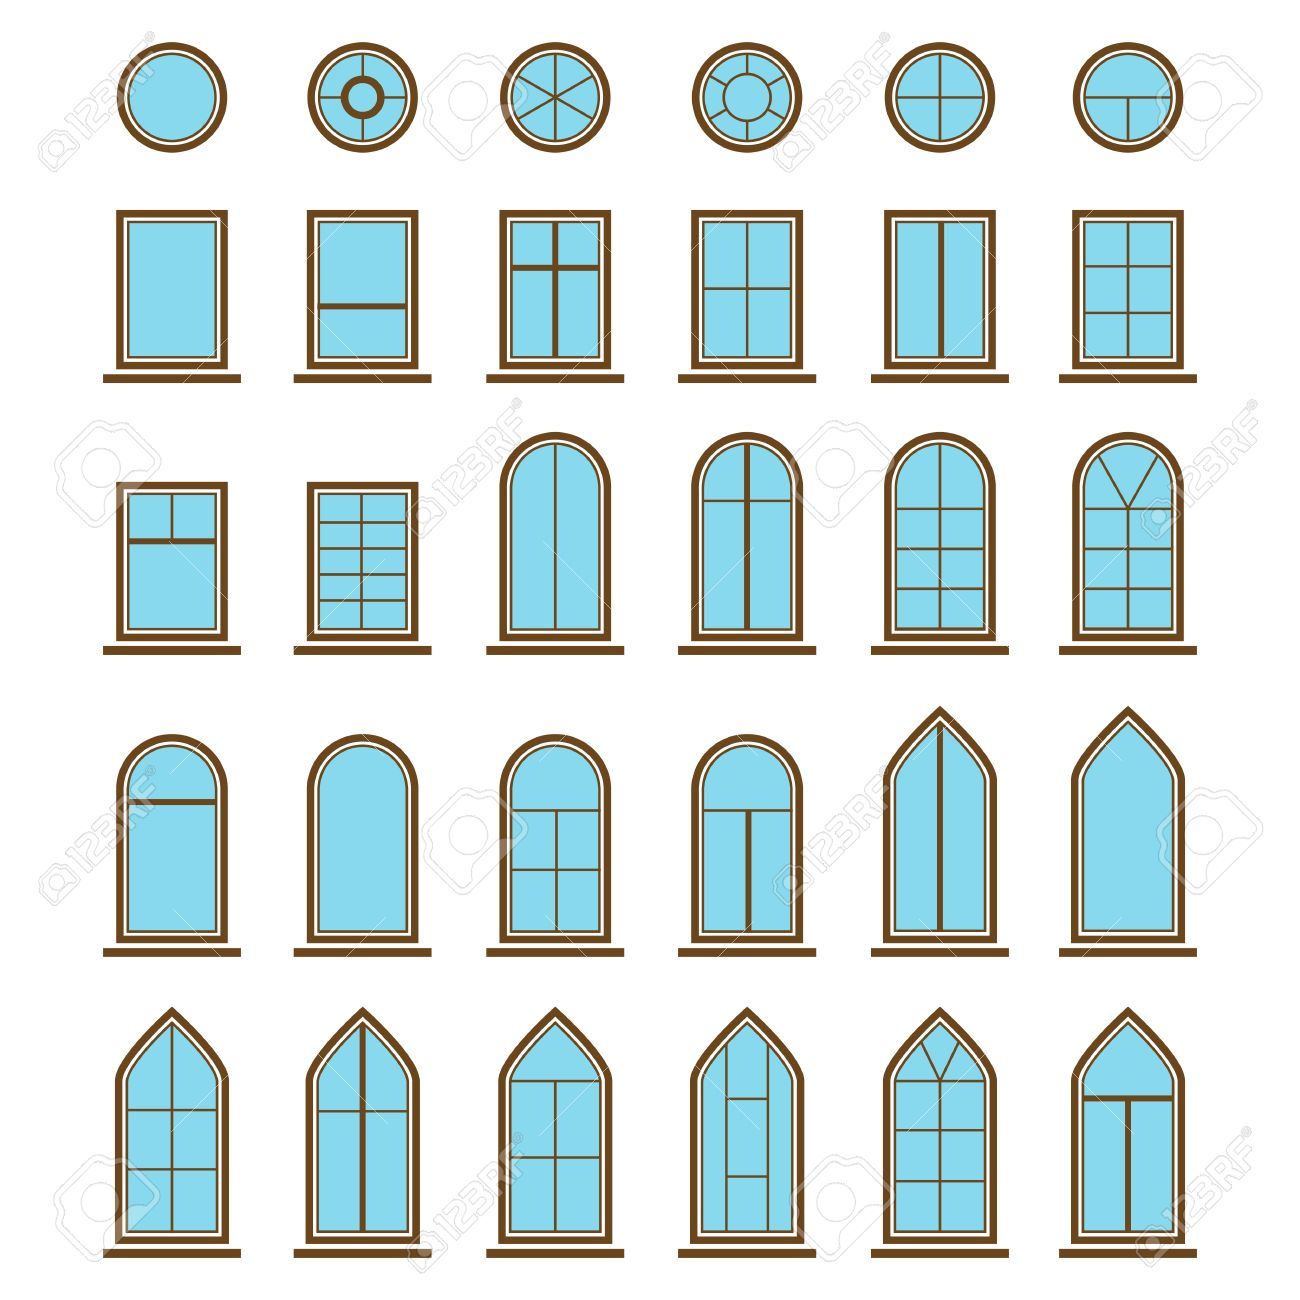 Window pane types - Set Of Different Icons Window And Windowpane Pane Types Like Eyebrow With Curved Top And